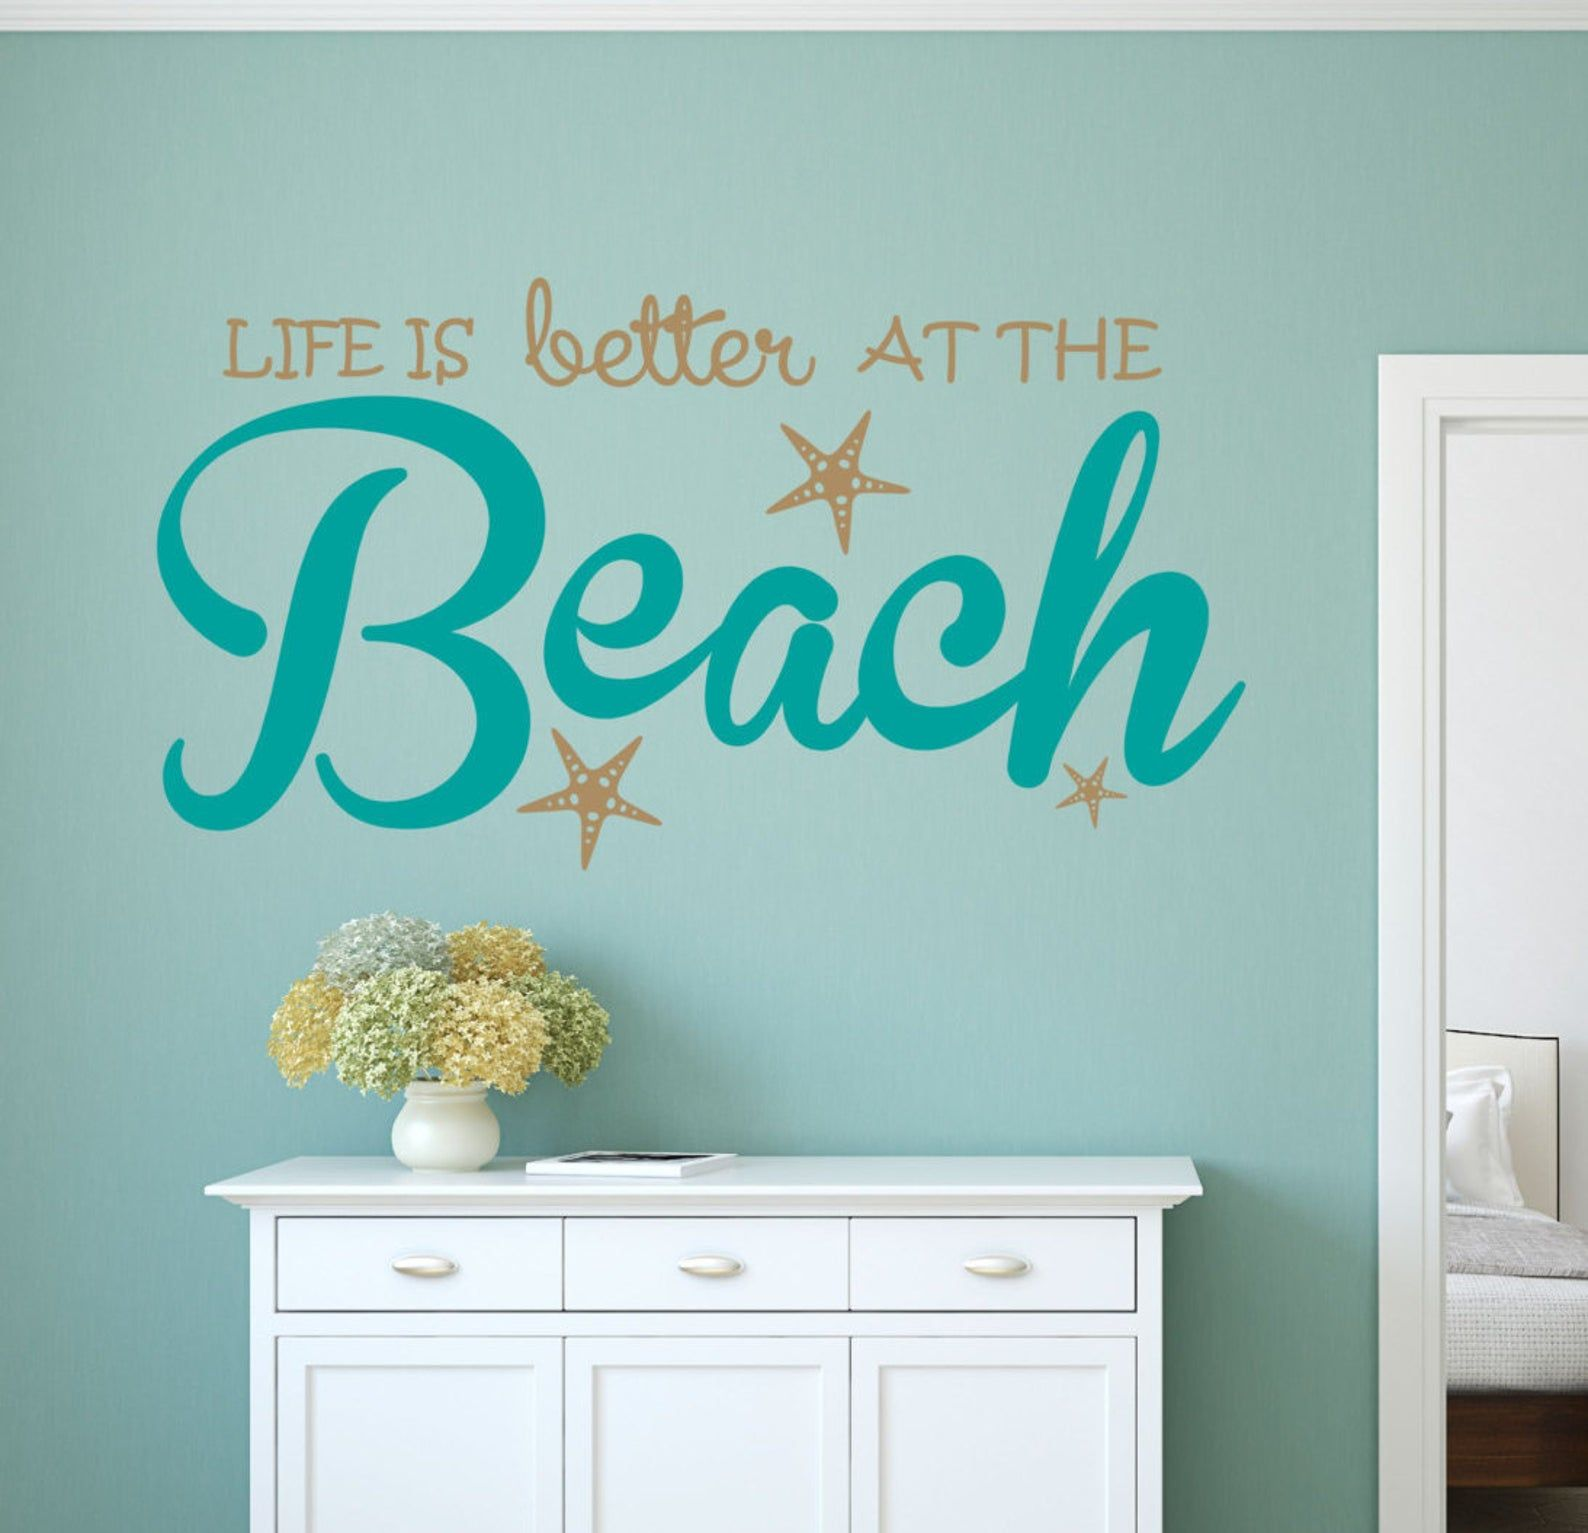 Life Is Better Beach Wall Decal Sticker In 2020 Beach Wall Decals Wall Decals Wall Decal Sticker